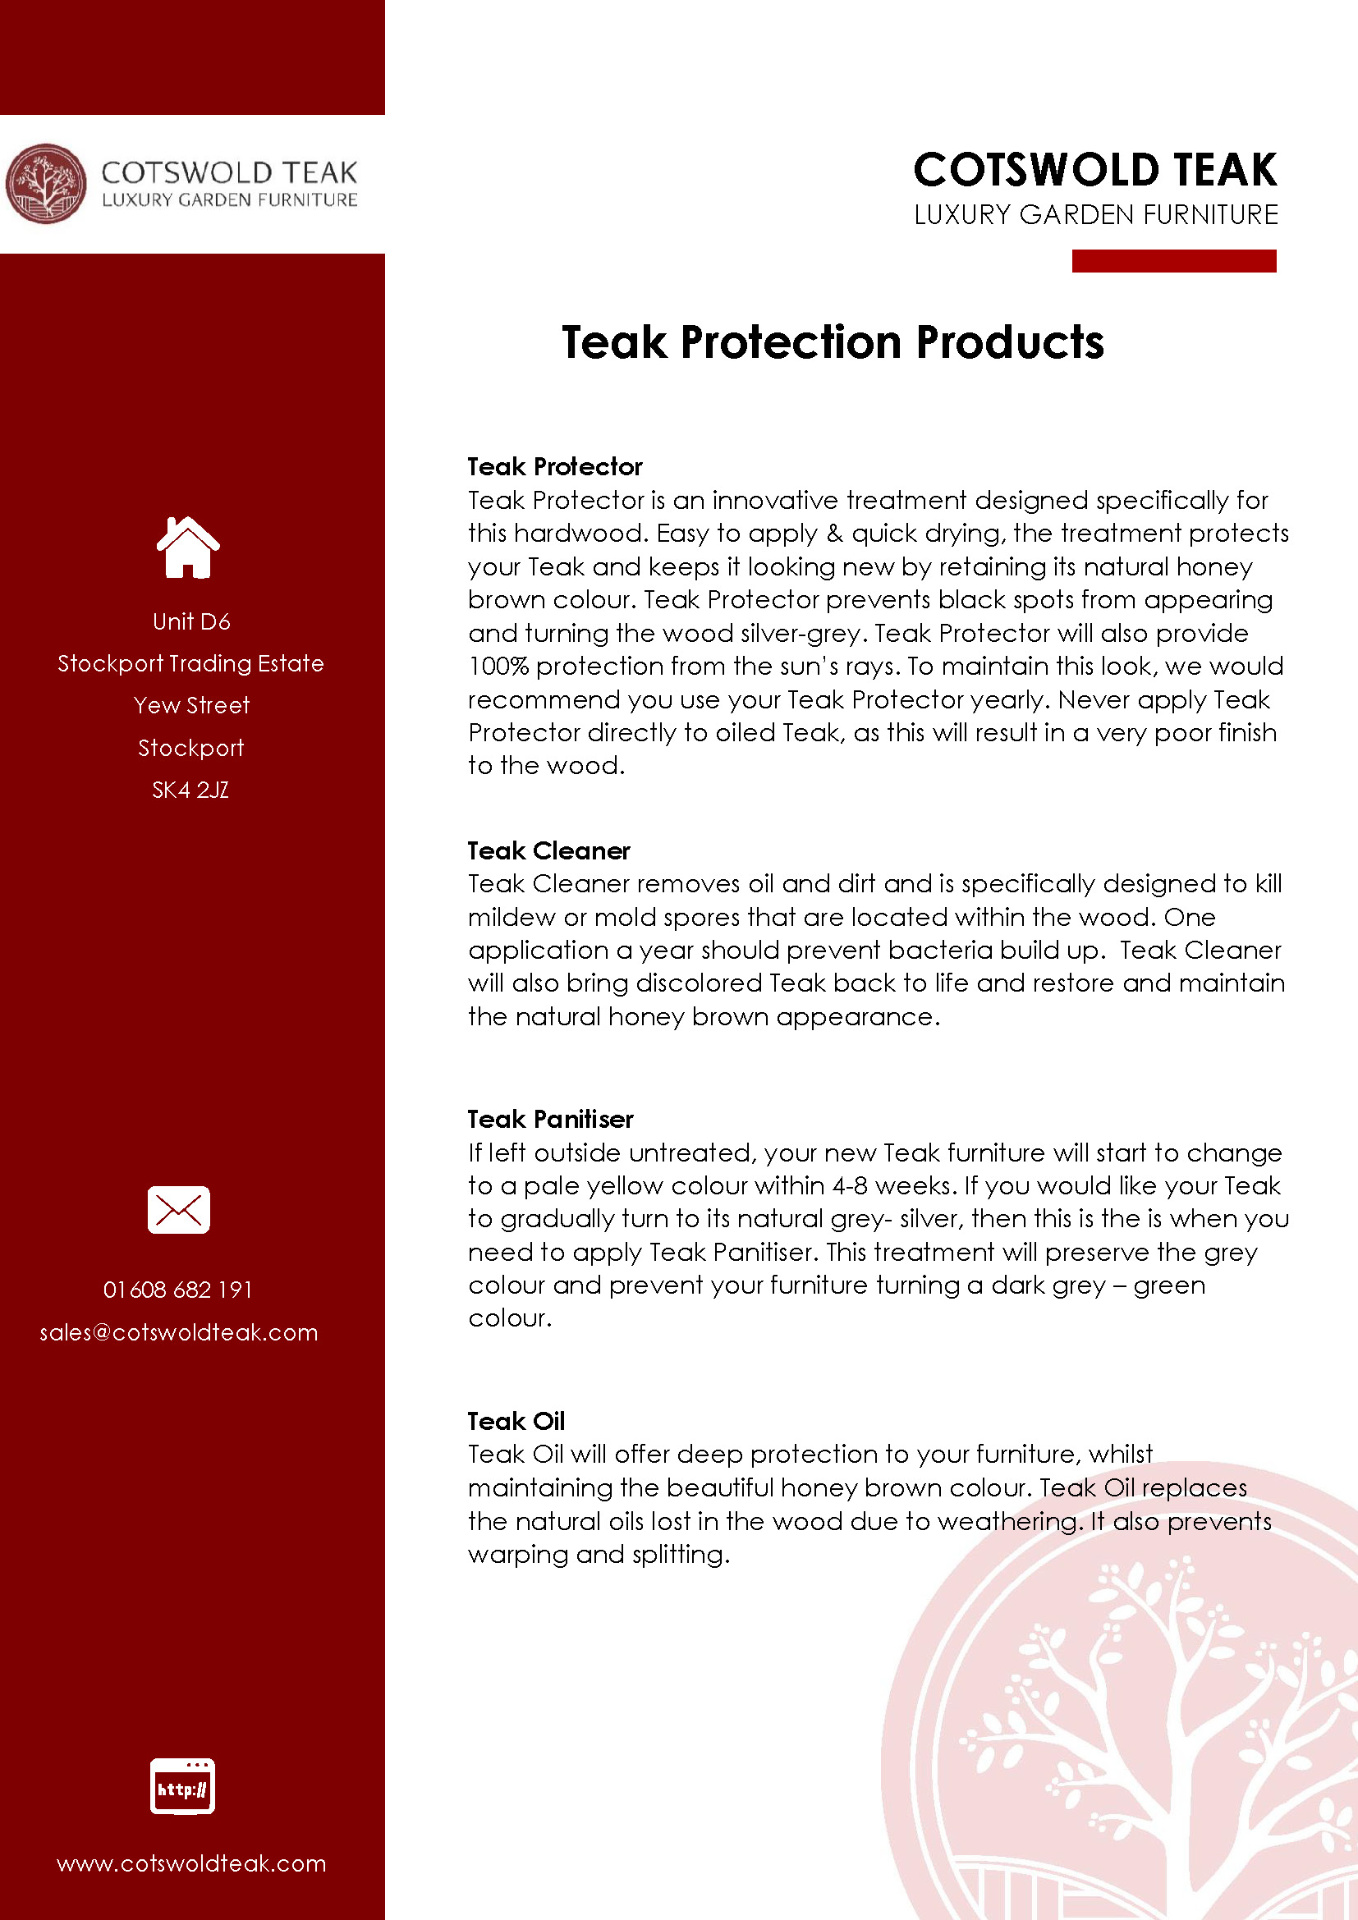 teak-protection-products.jpg